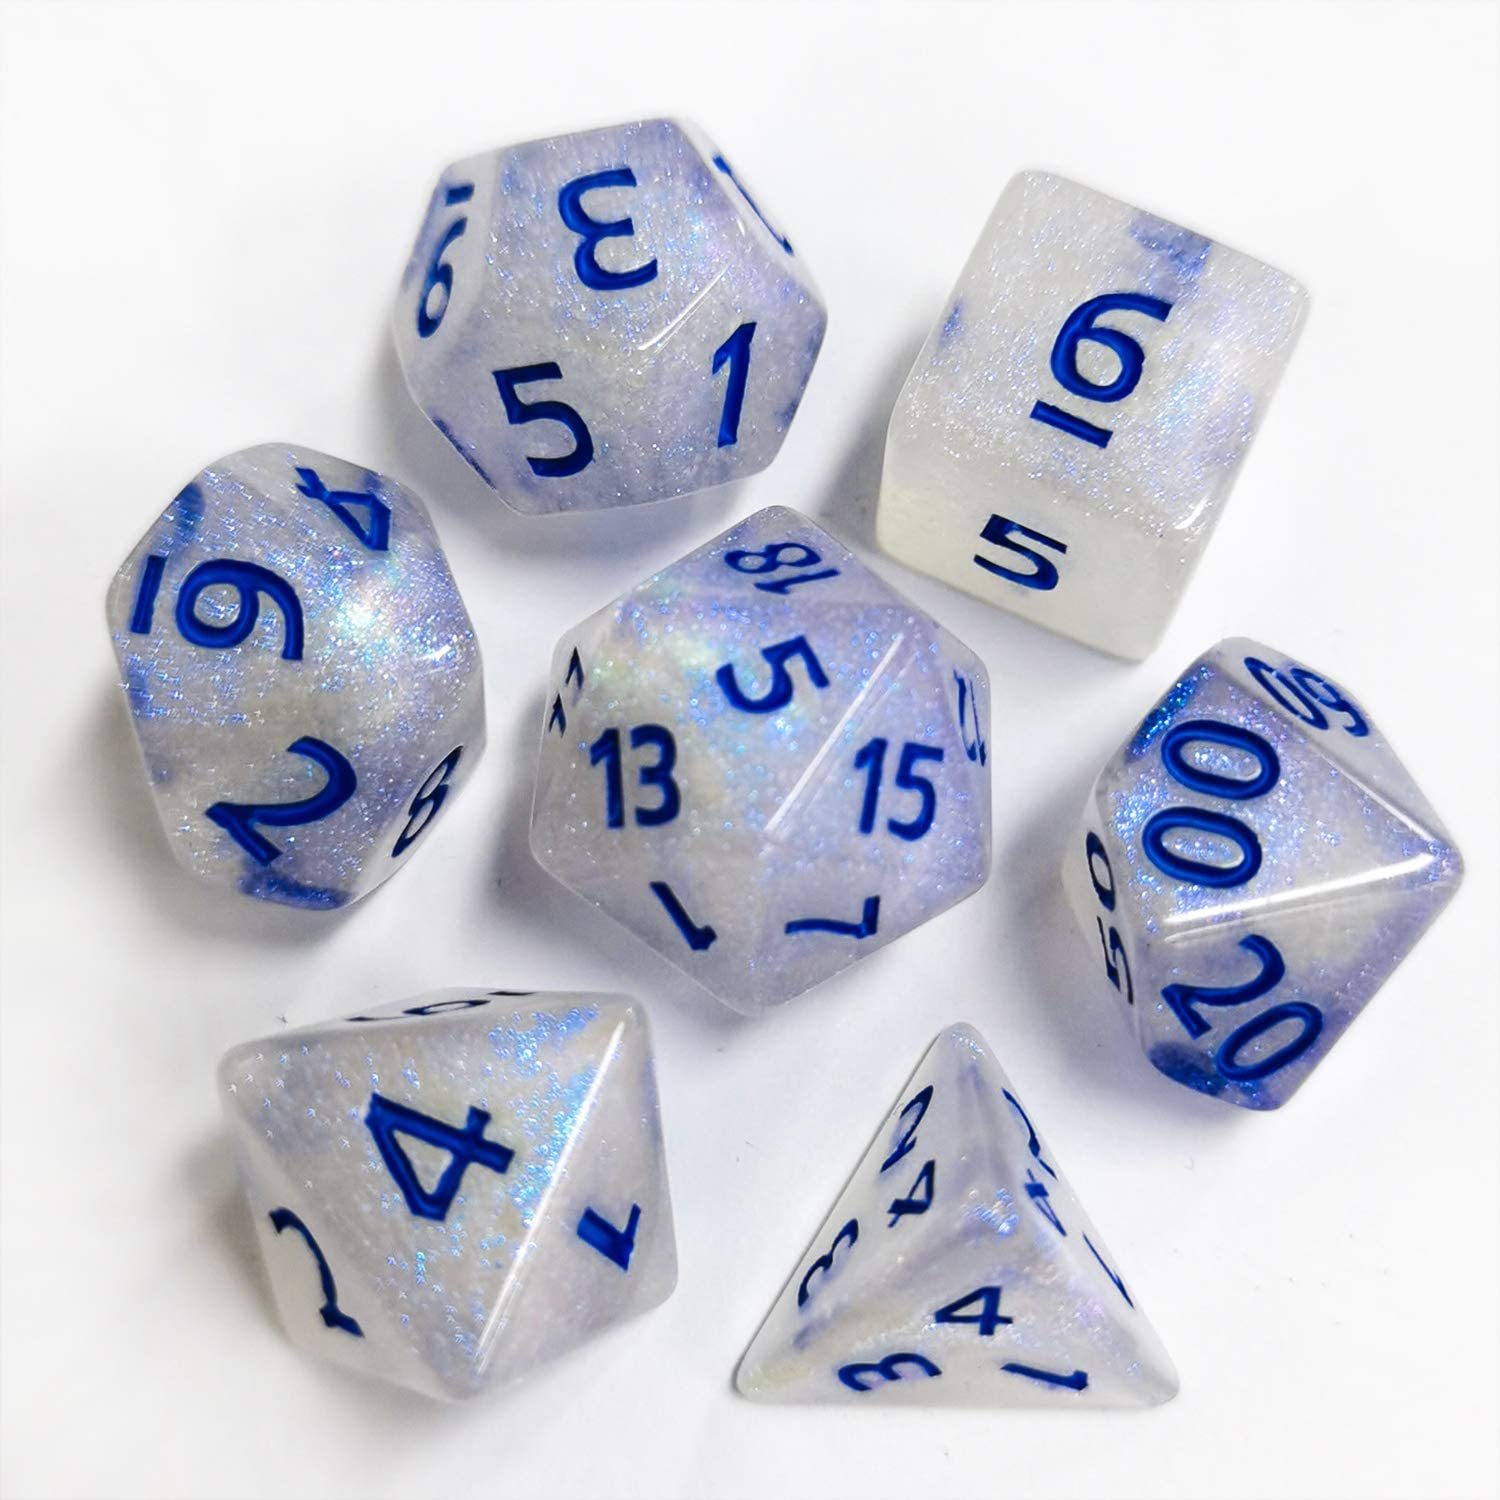 FLASHOWL Dice D/&D Dice Set 5 Set for Role Playing Game Dungeons and Dragons Dice Polyhedral Game Dice Set Multicolor Semi-Transparent DND Dice Set 5 x7 Dice 35 Pieces